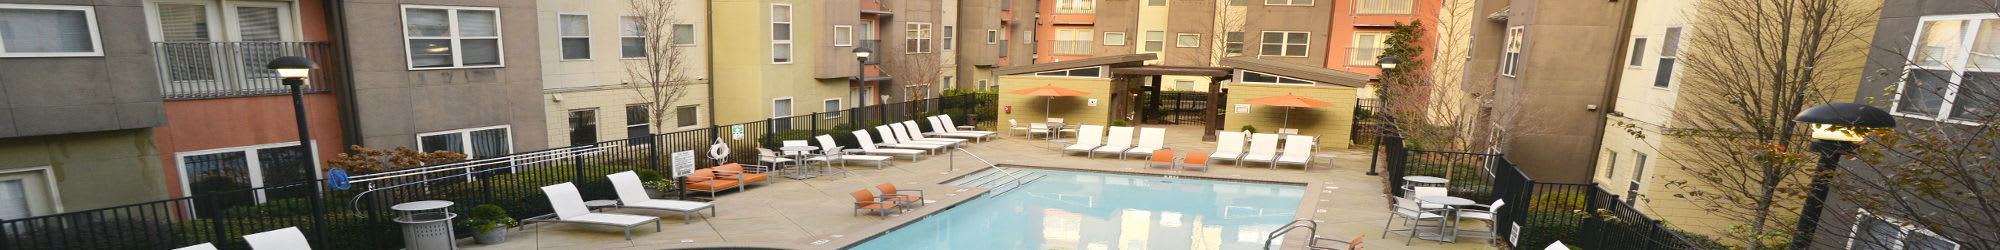 Contact The Flats for information about our apartments in Atlanta